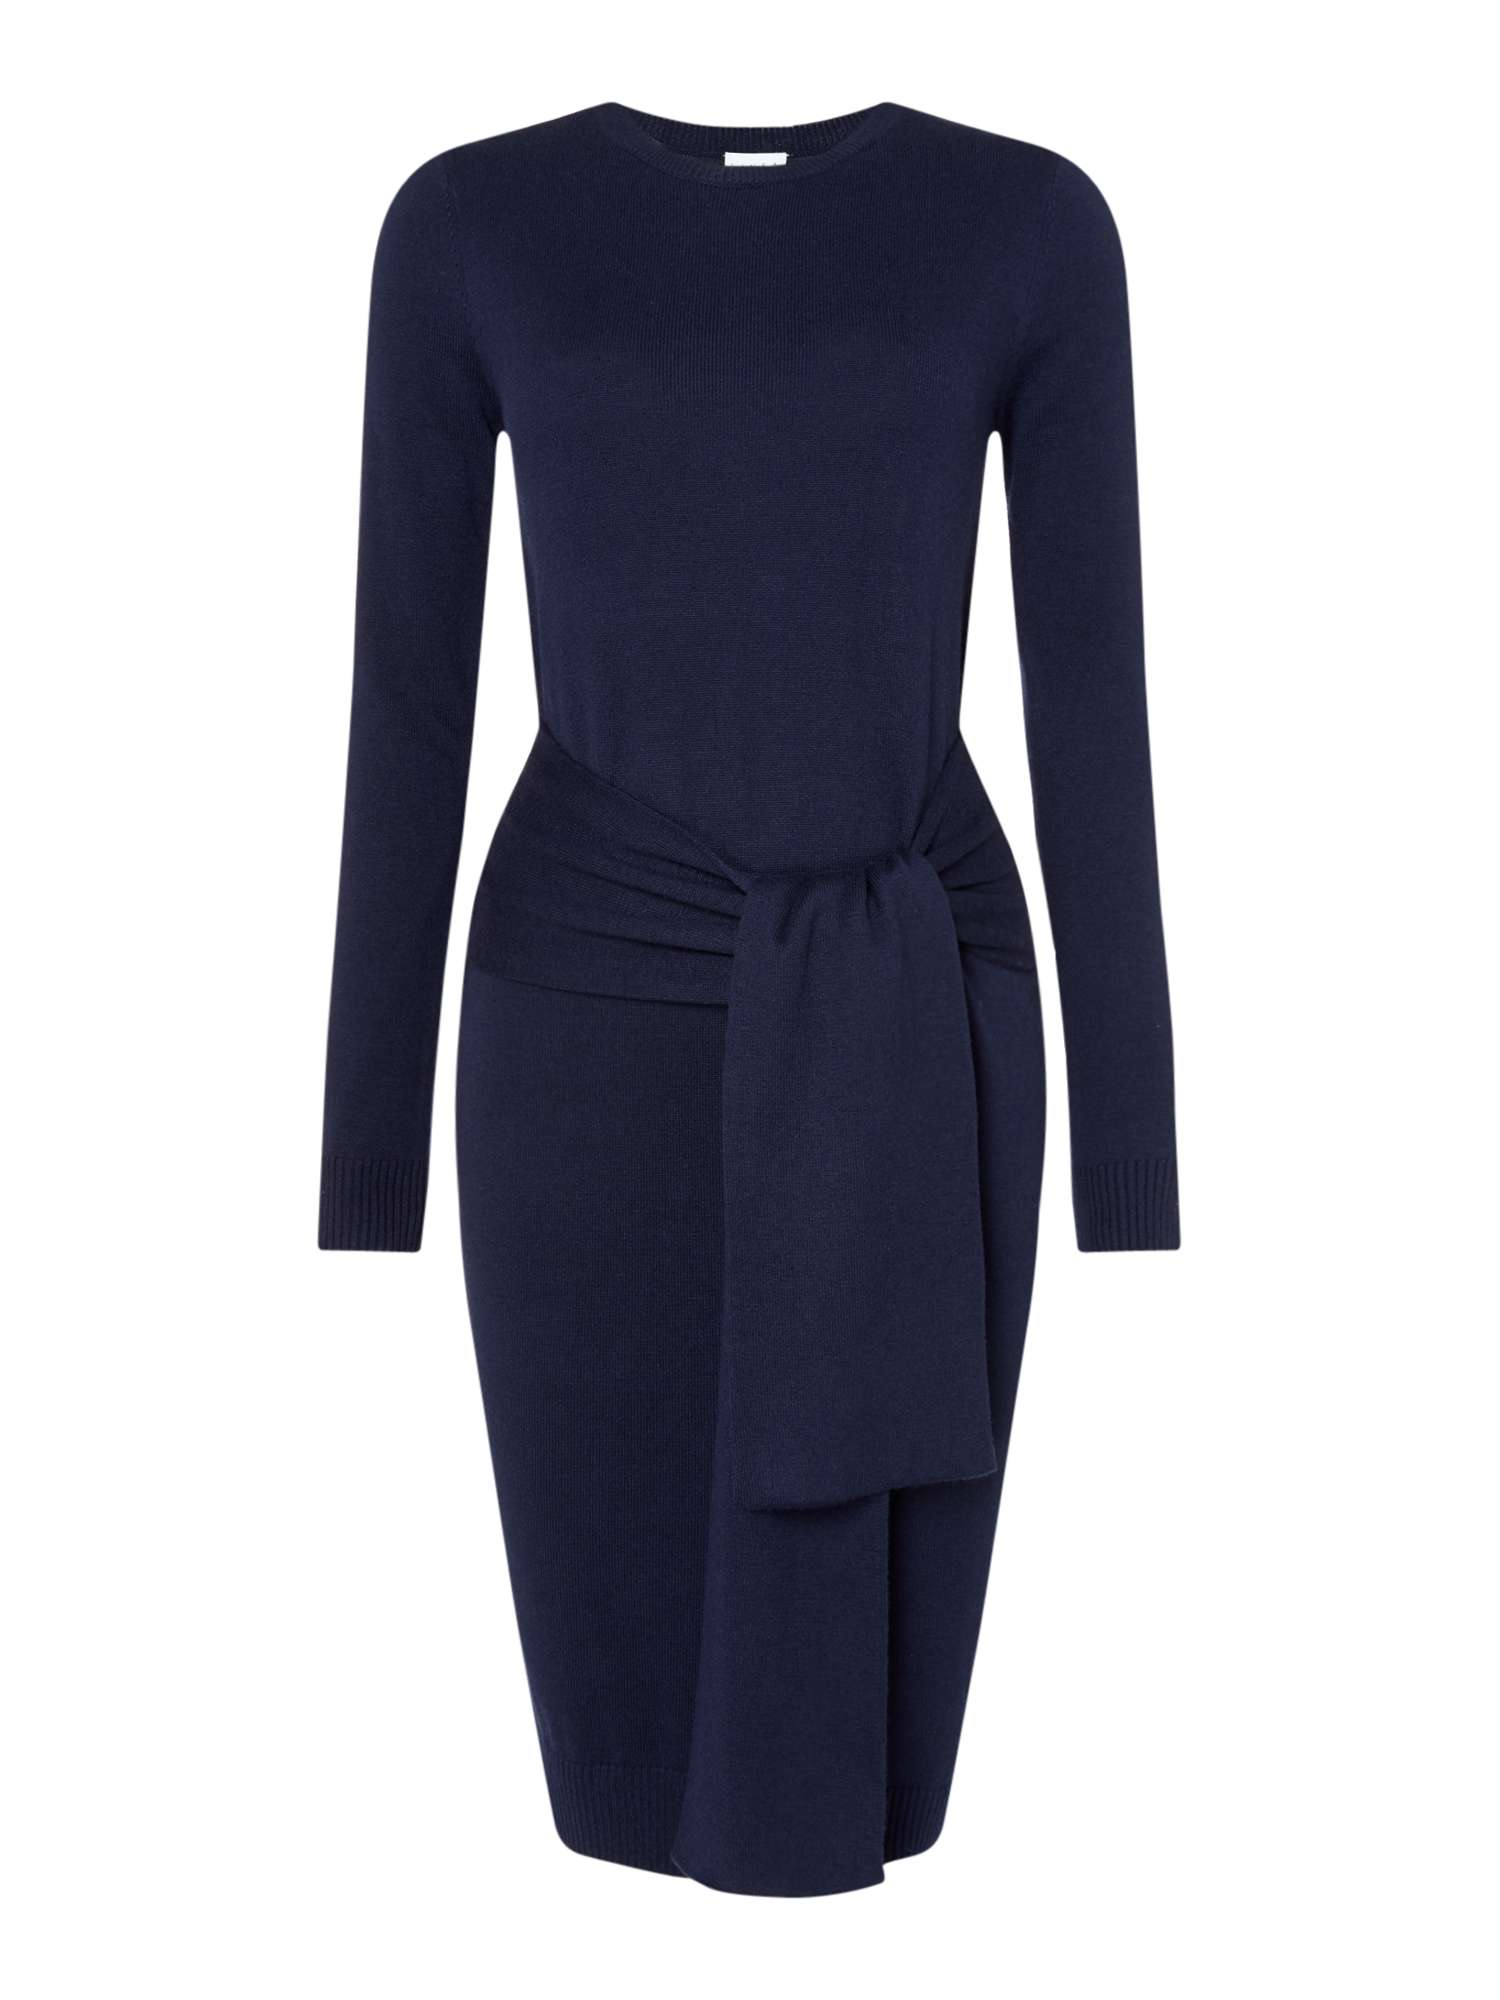 Linea Women\'s Dresses Sale at House of Fraser